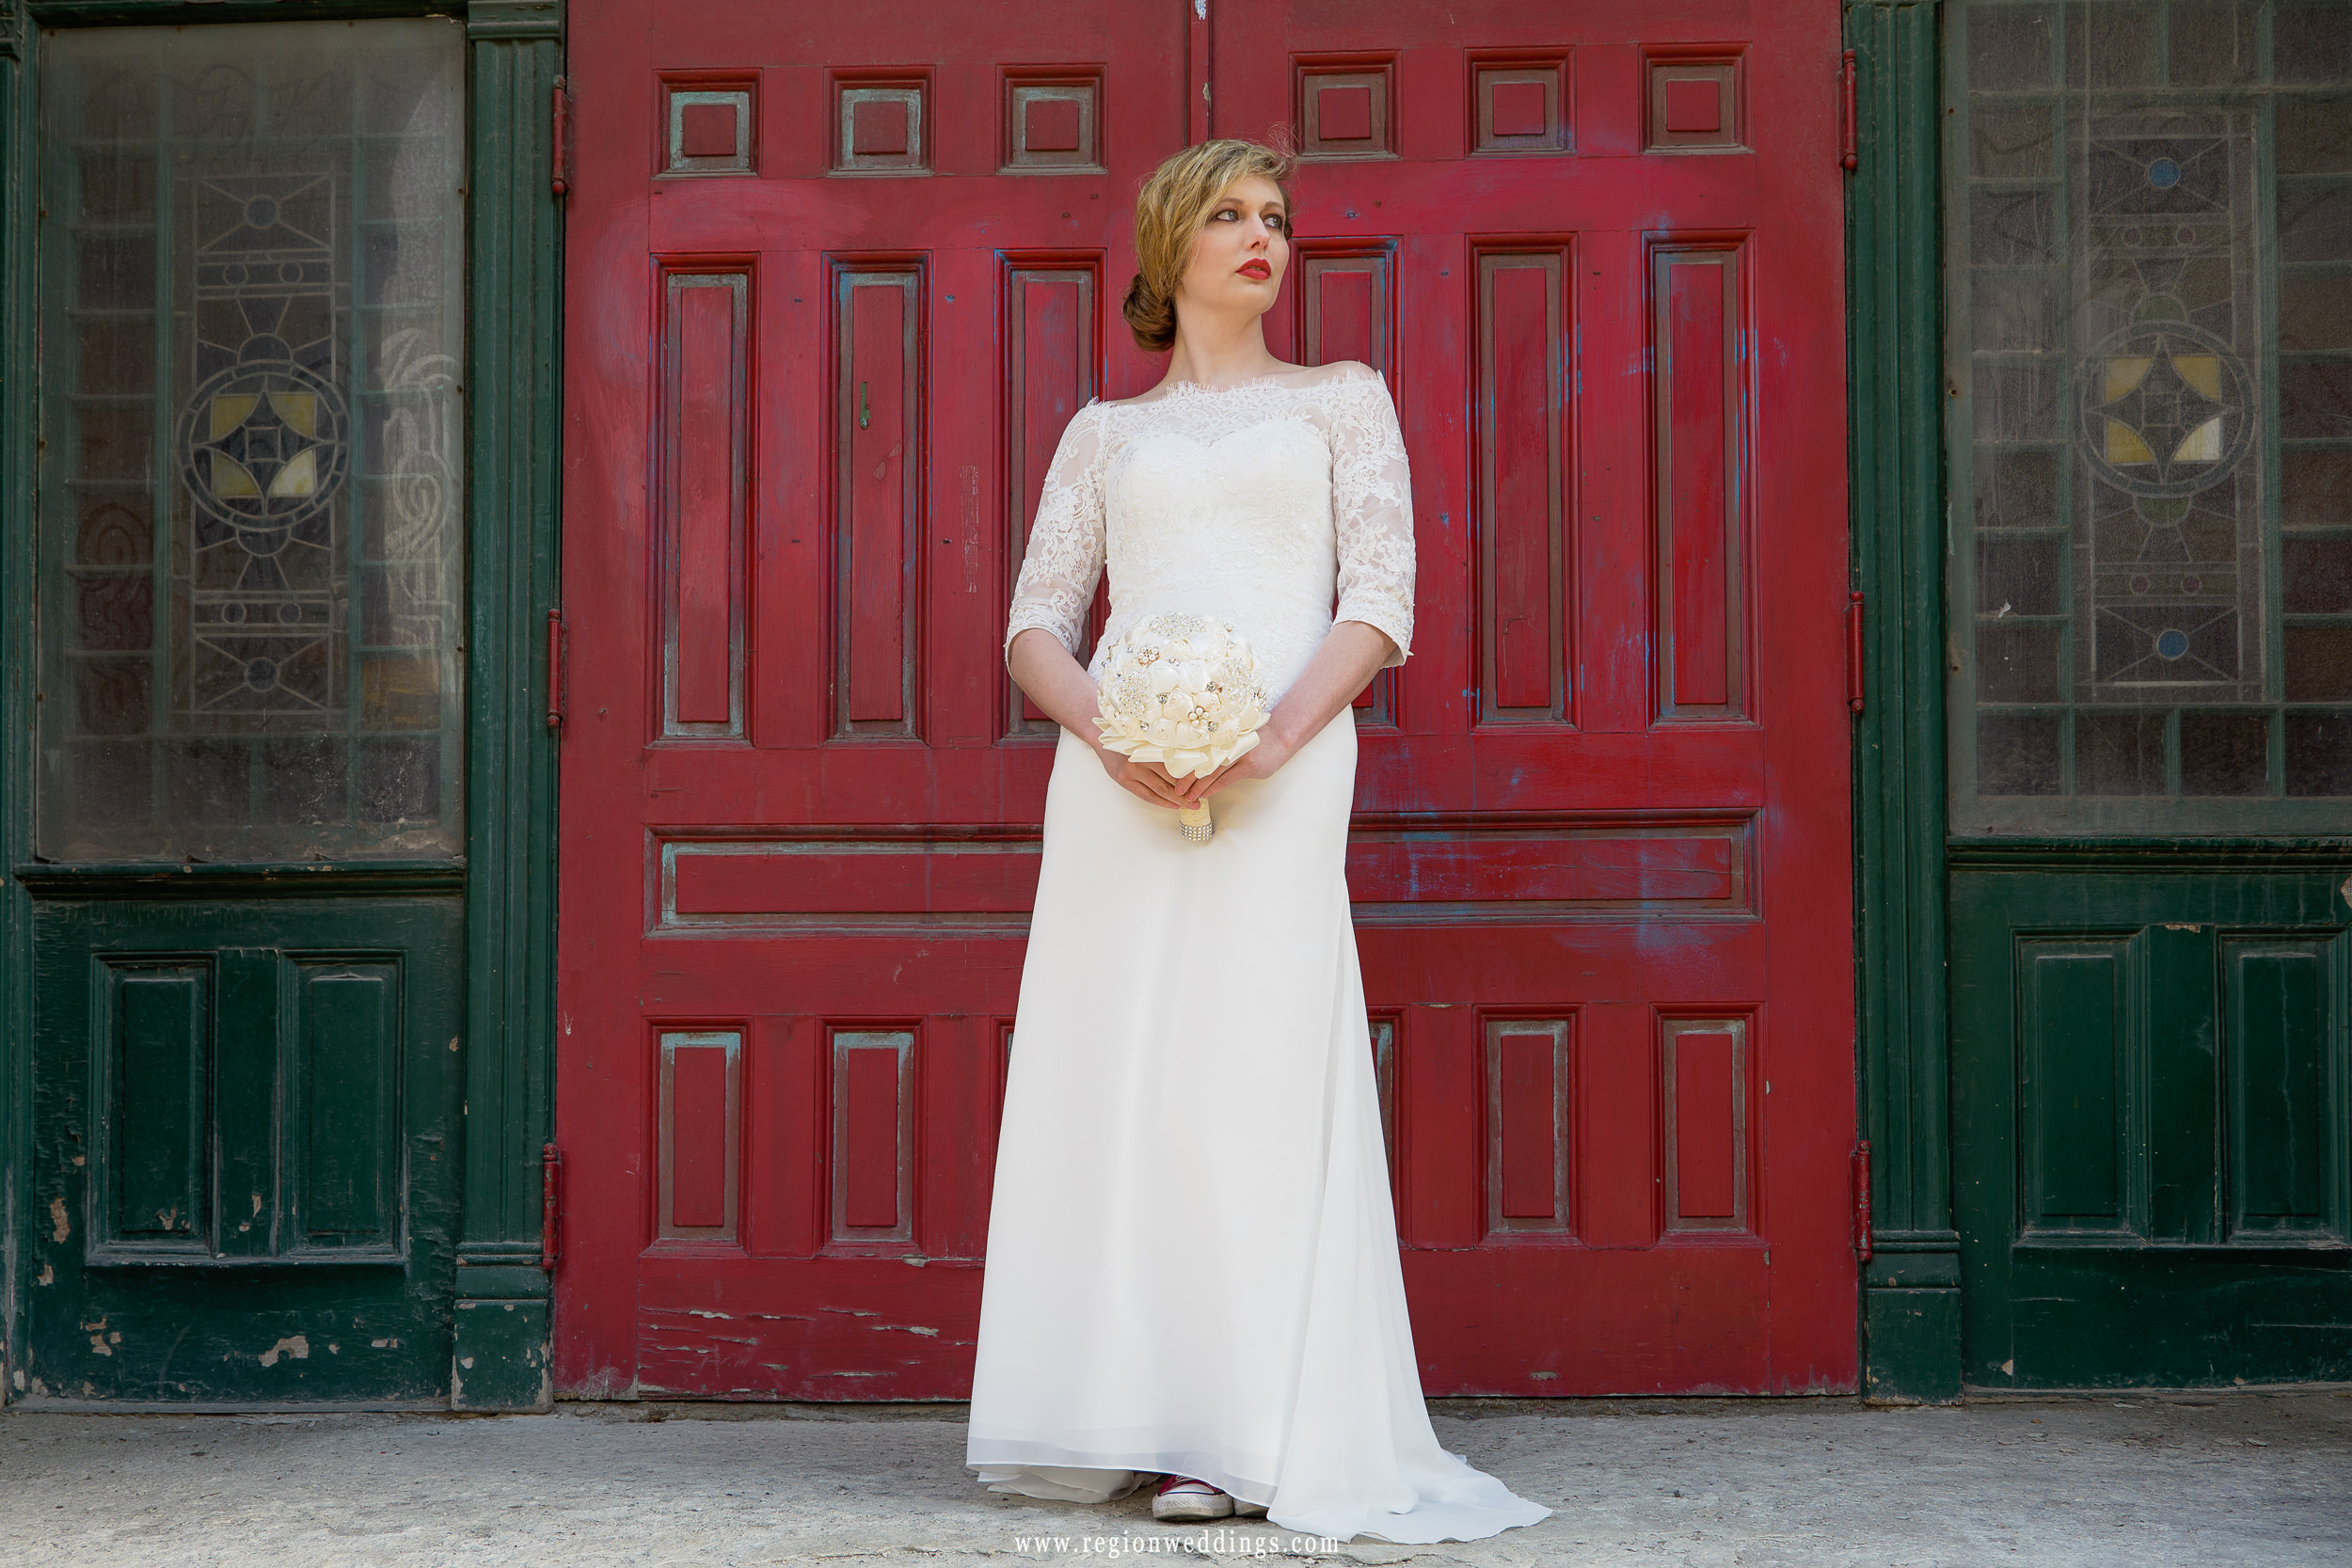 Bridal portrait in front of a grungy red door in Chicago.